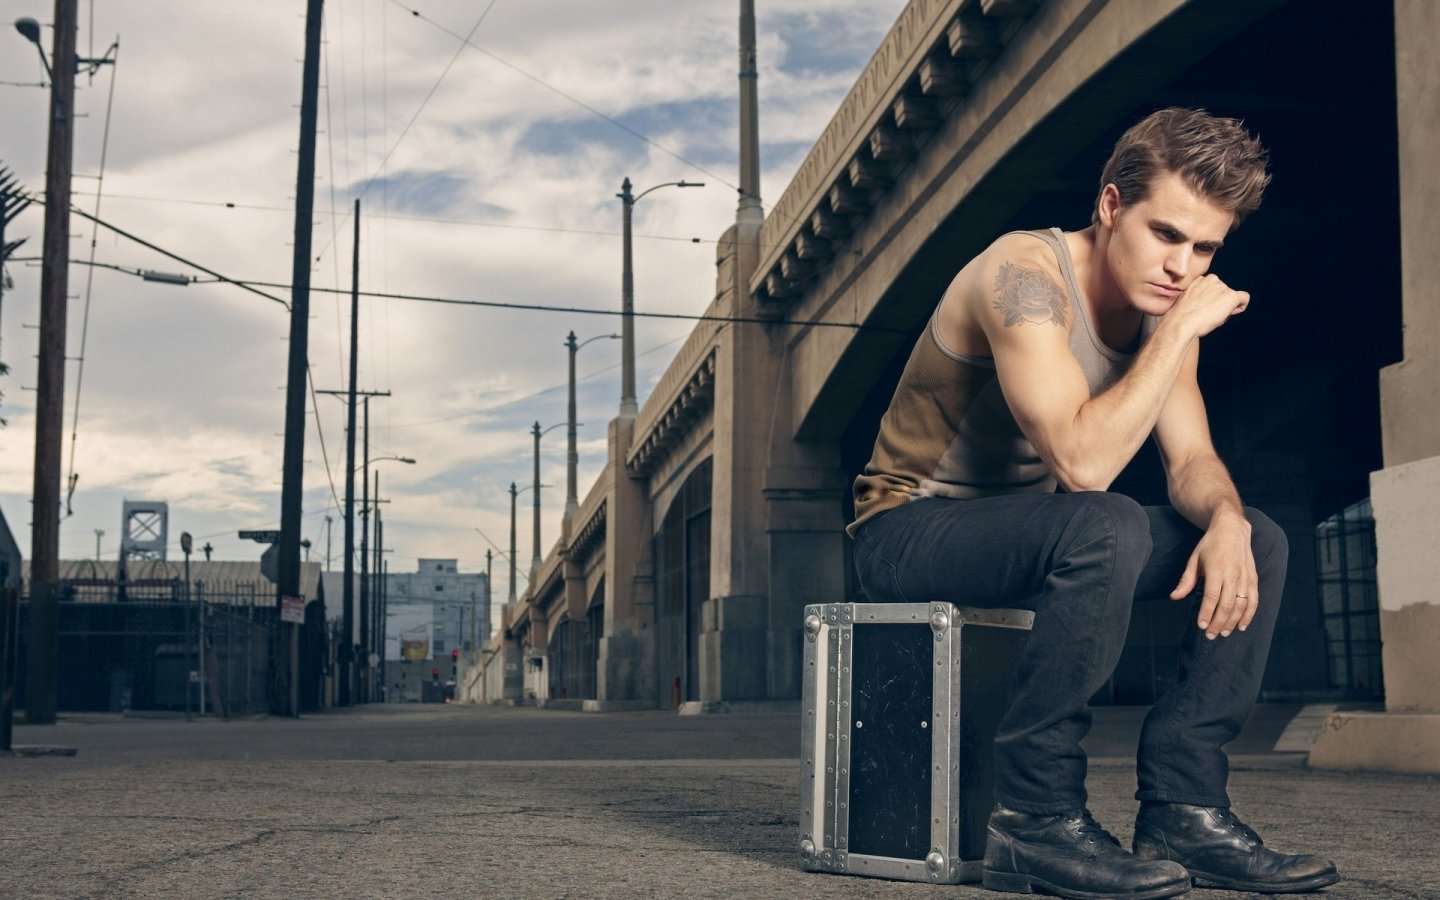 Paul Wesley Photo Shoot for 1440 x 900 widescreen resolution